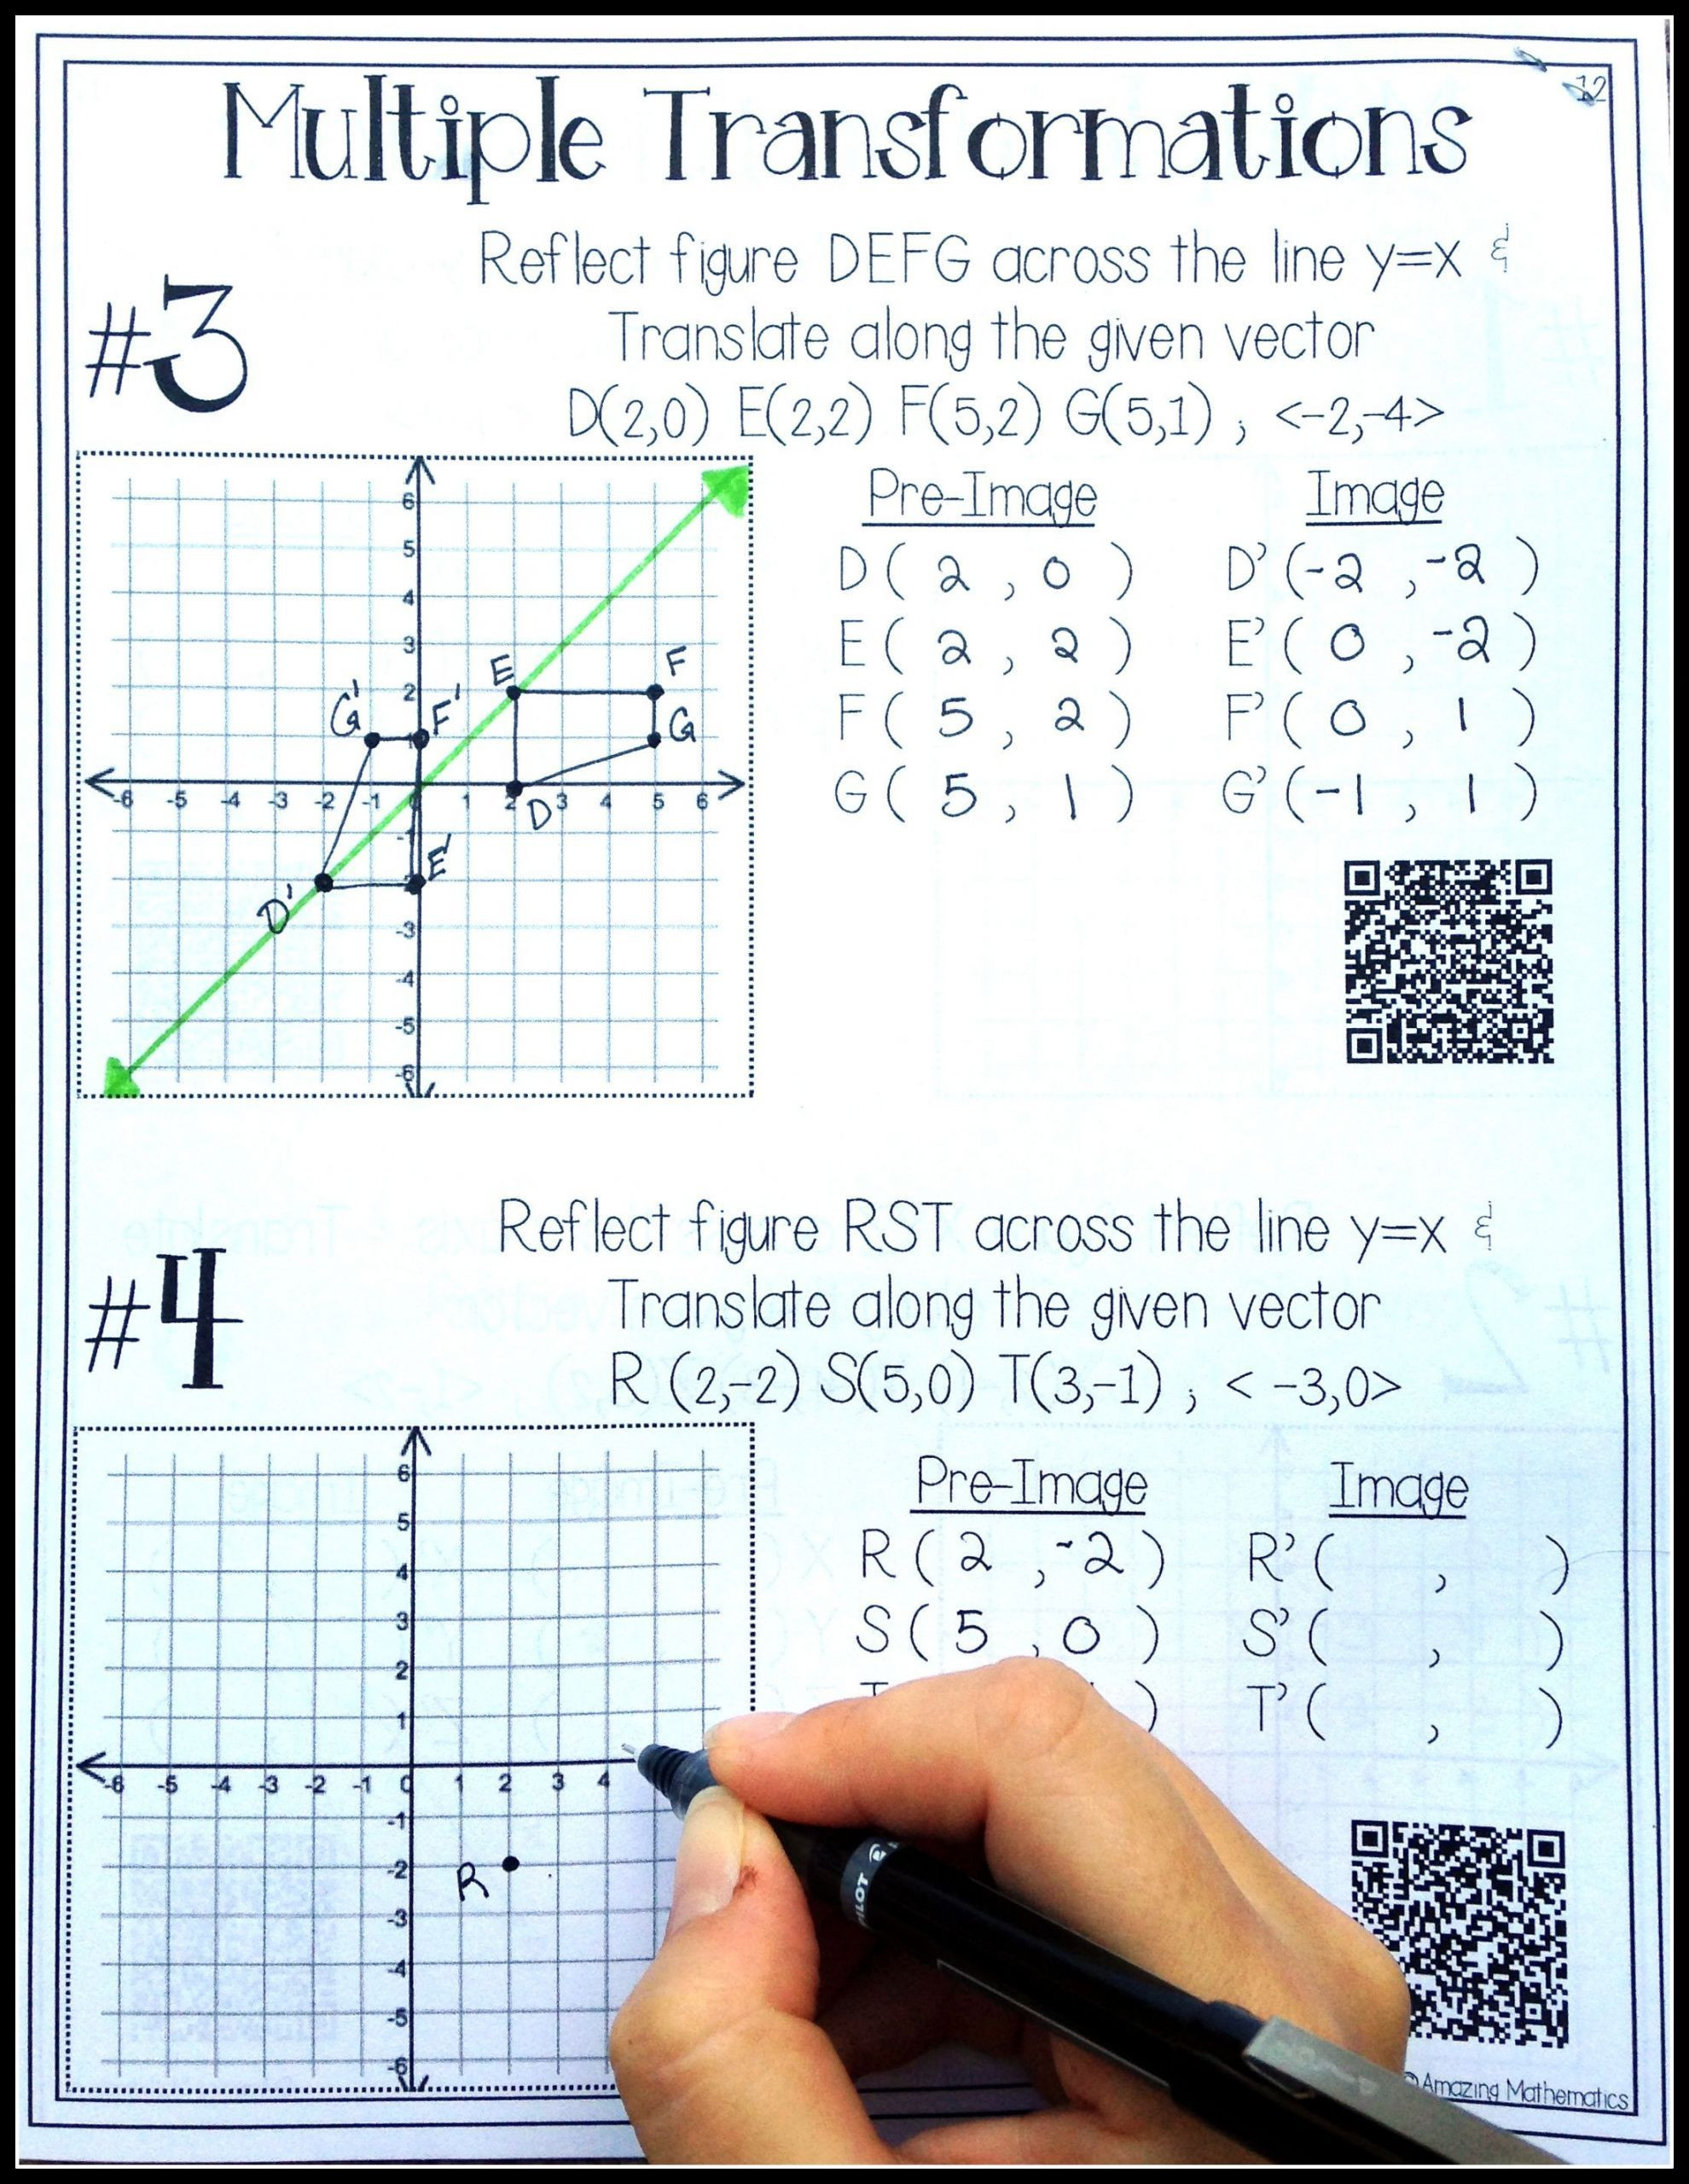 Transformation Math Worksheets 2 Translations Math Worksheets 2 In 2020 with Images